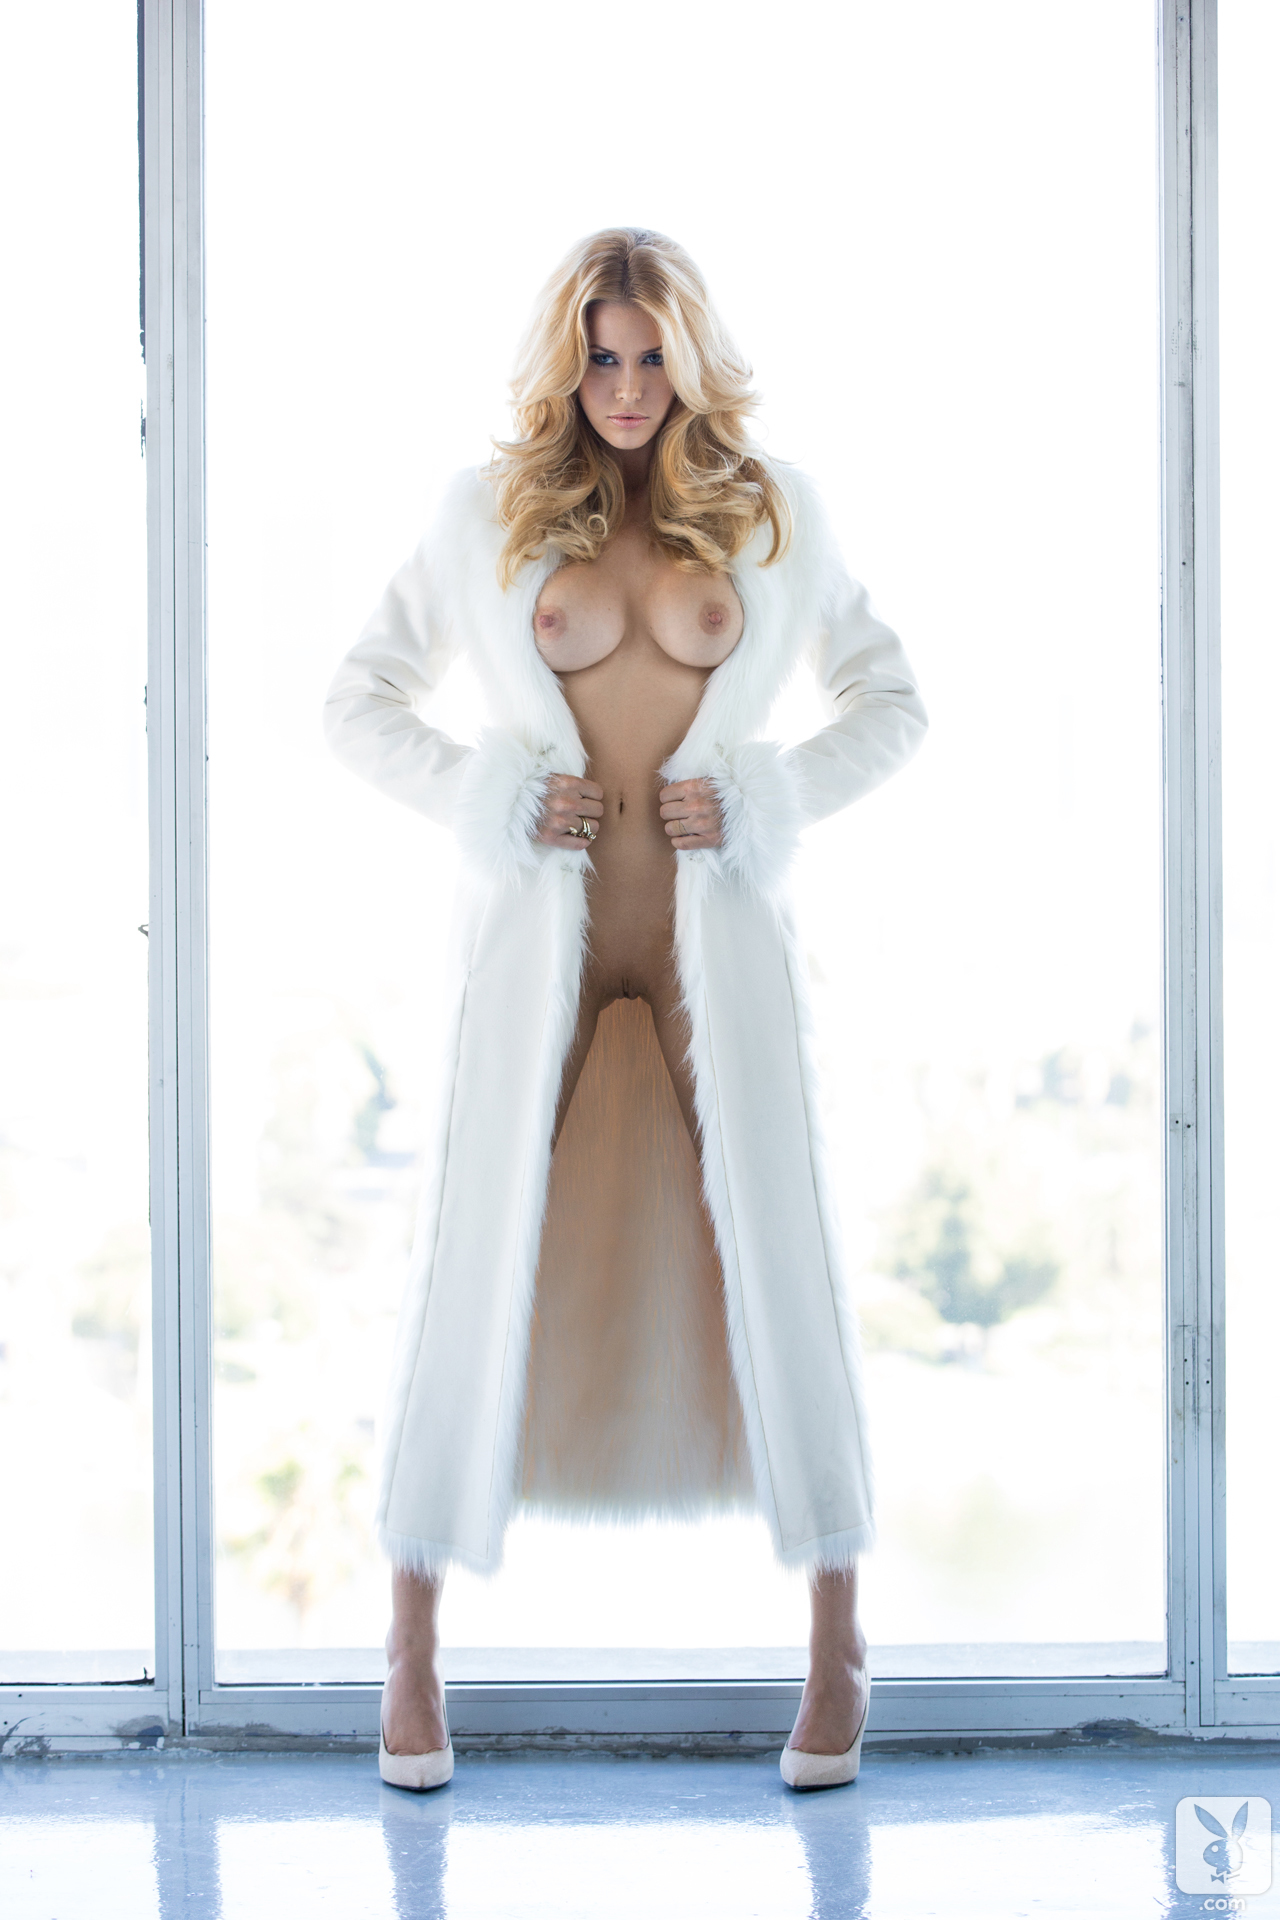 kennedy-summers-miss-december-2013-playboy-17